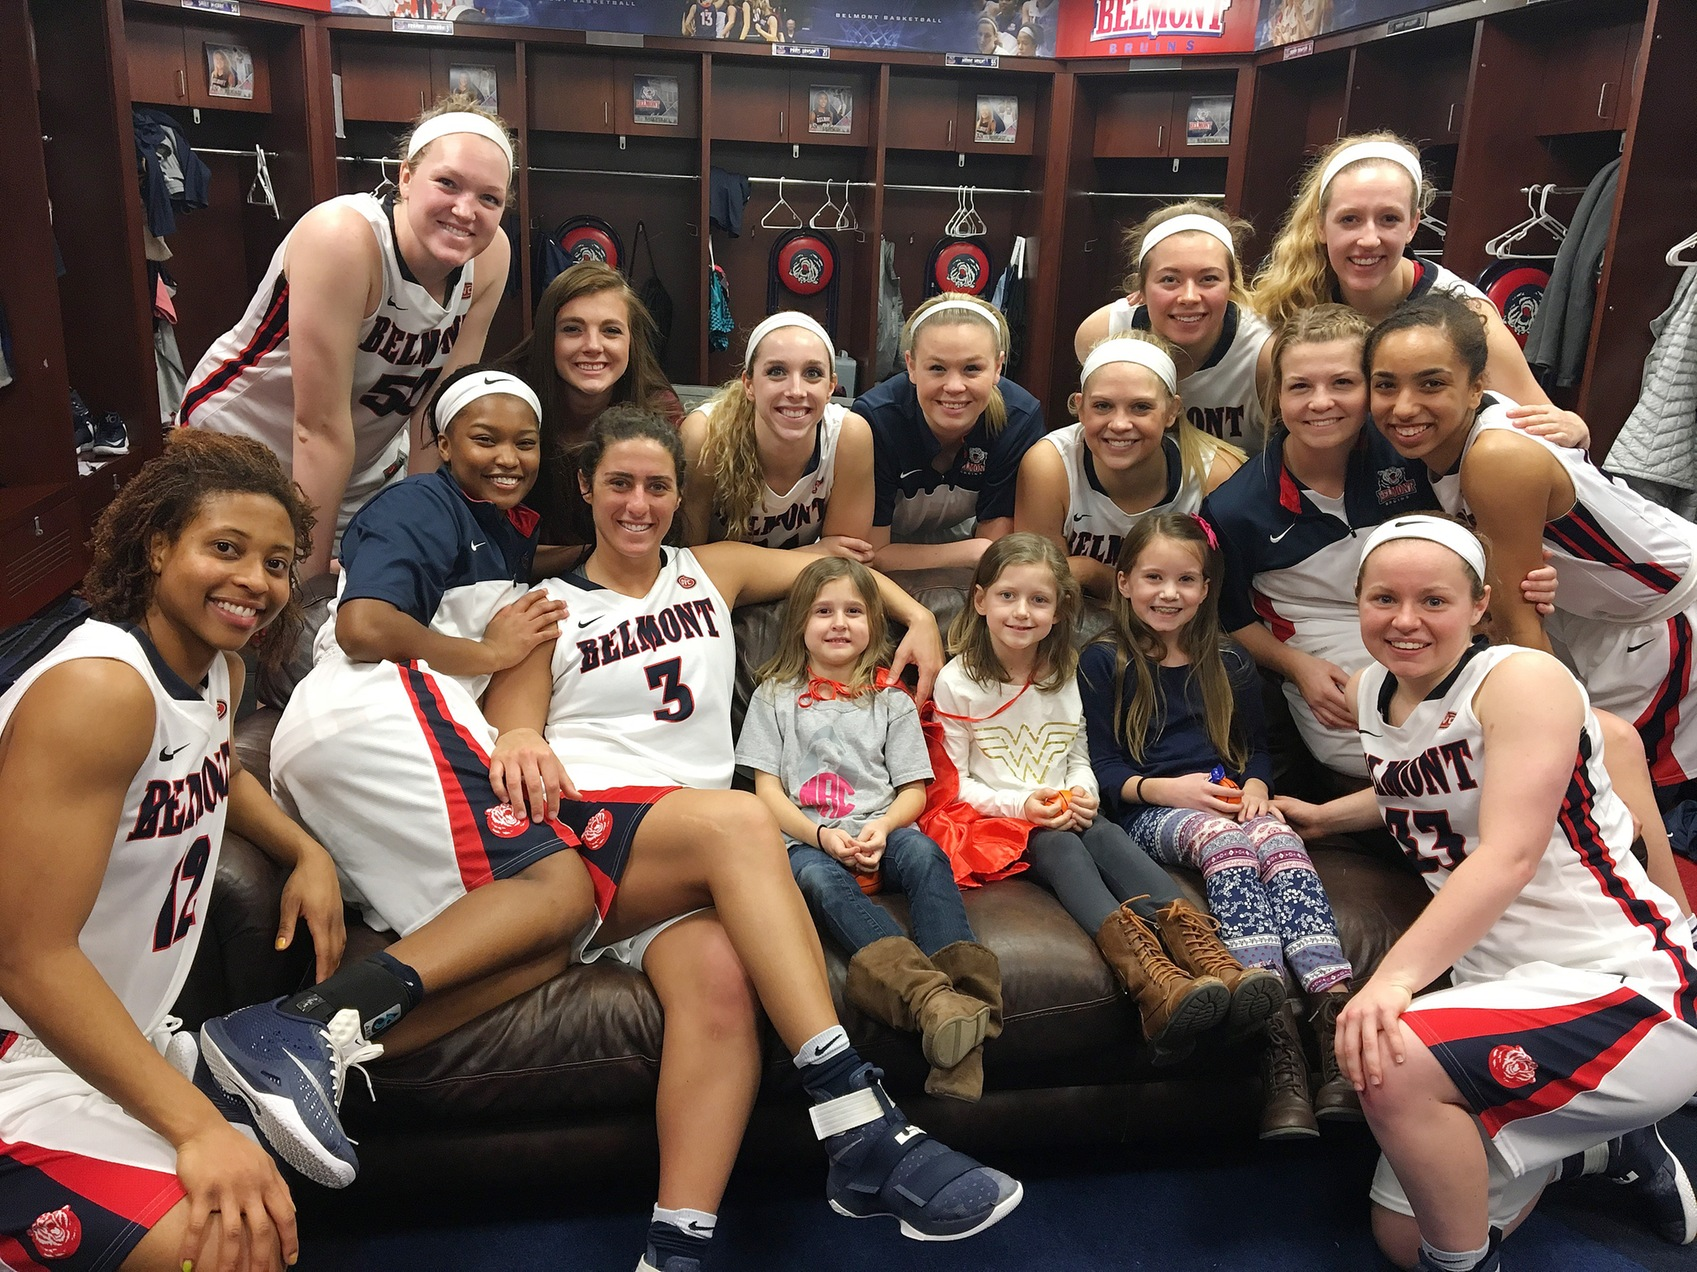 Morgan Rogers, pictured at center with sister Harper (left) and friend Brooklyn Jones (right), in the Belmont women's basketball locker room. (Photo courtesy of Michelle Rogers)